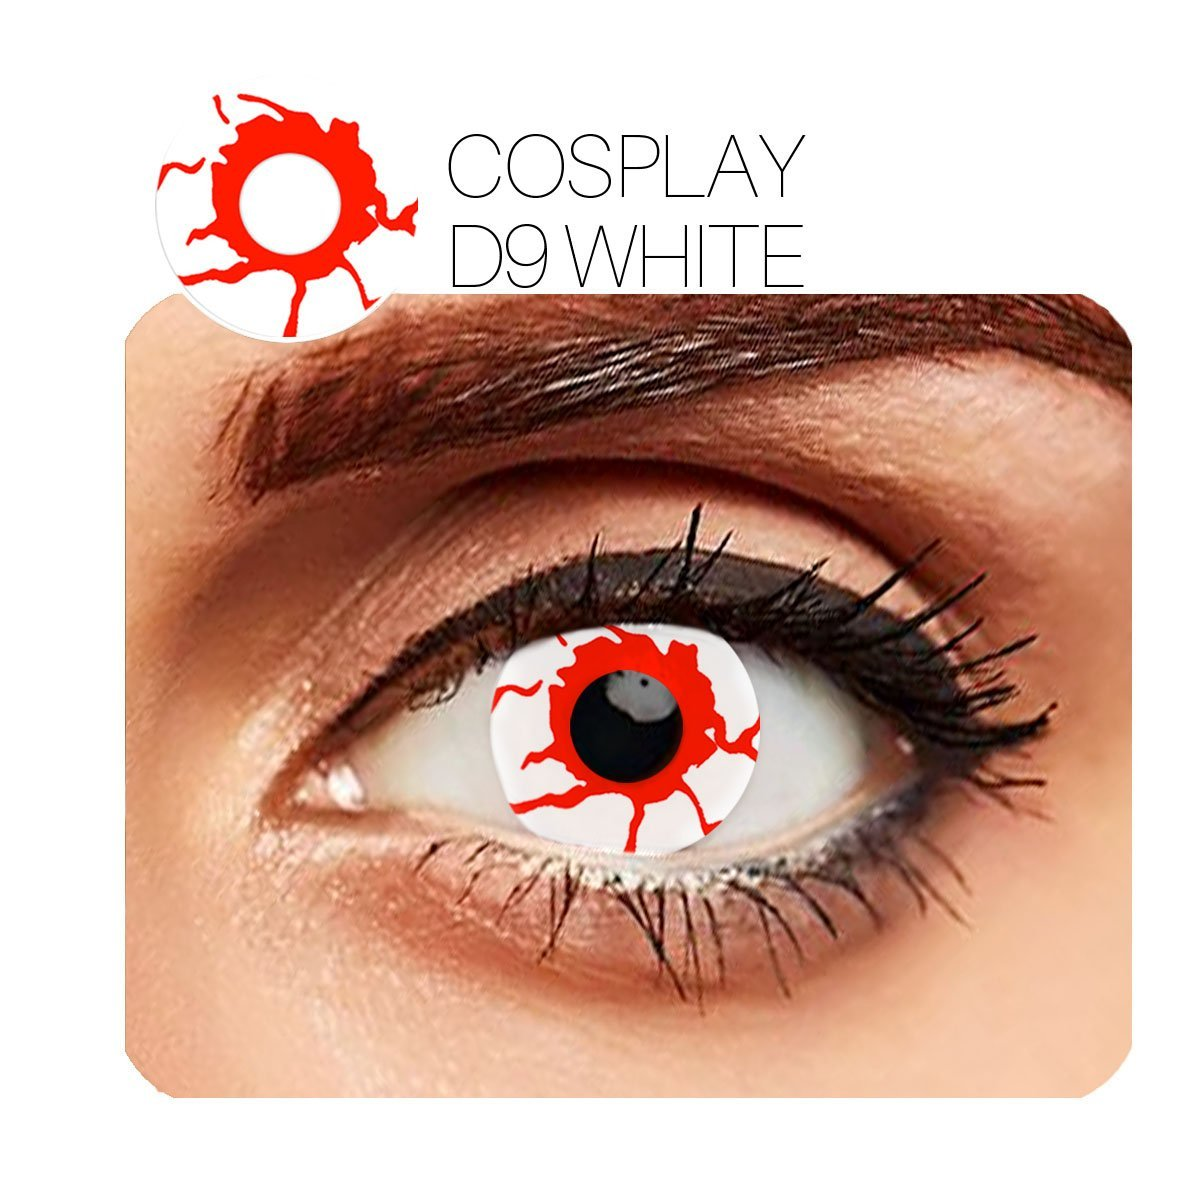 Bleeding Cosplay Red (12 Month) Contact Lenses